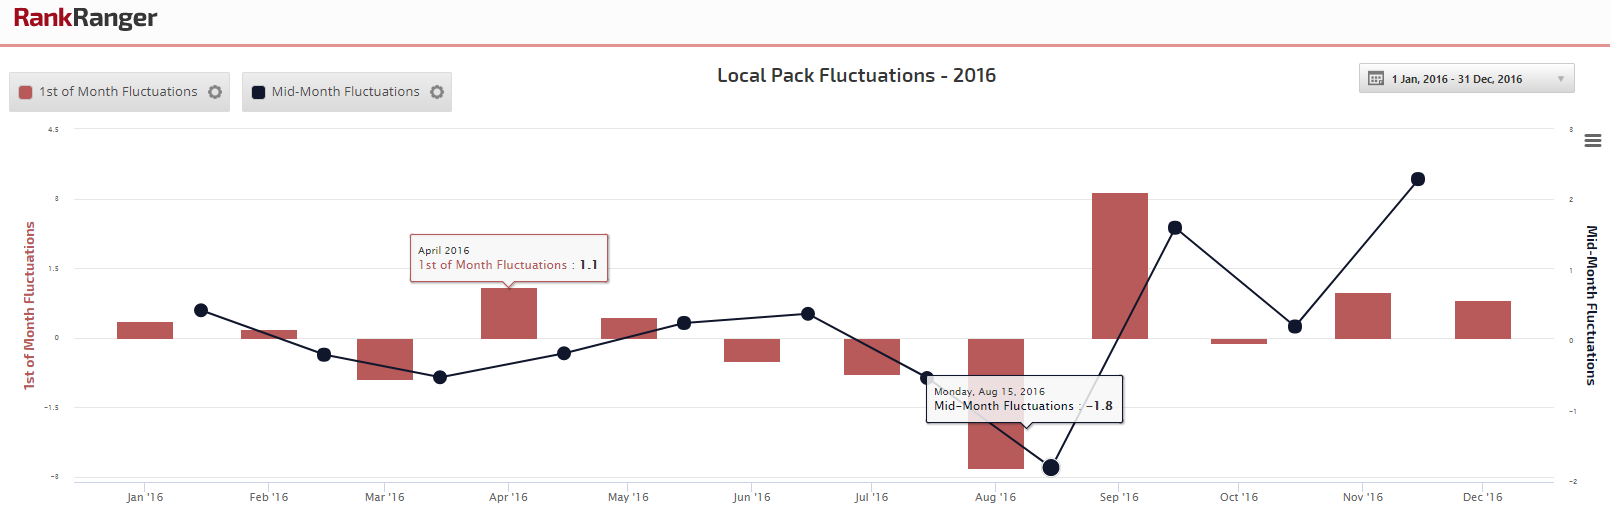 2016 Local Pack Fluctuations